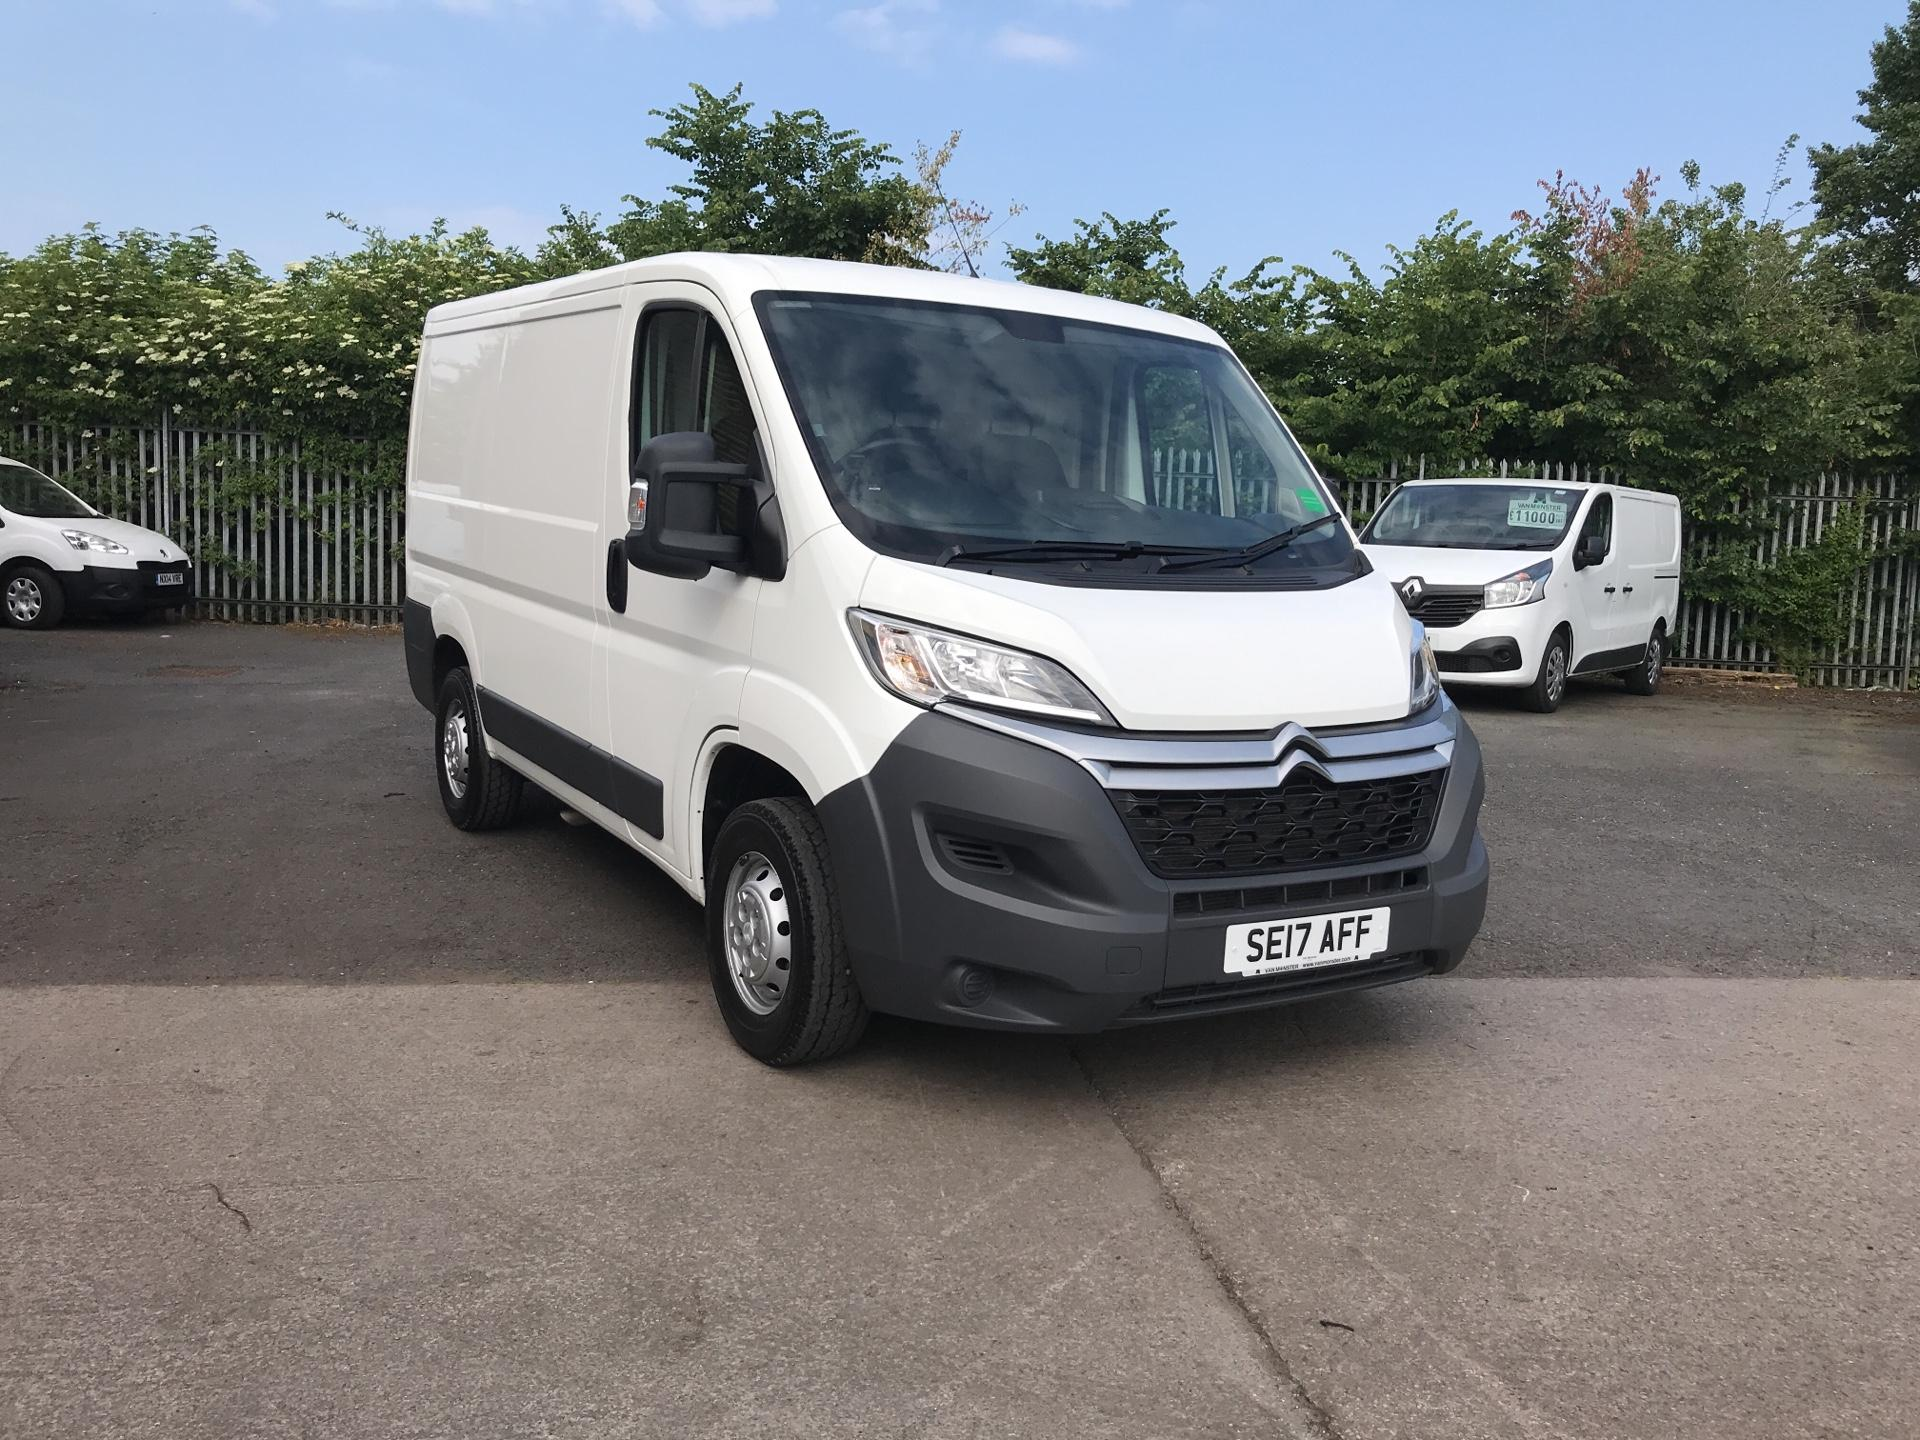 2017 Citroen Relay L1 H1 ENTERPRISE BLUE 2.0HDI 110PS (SE17AFF)